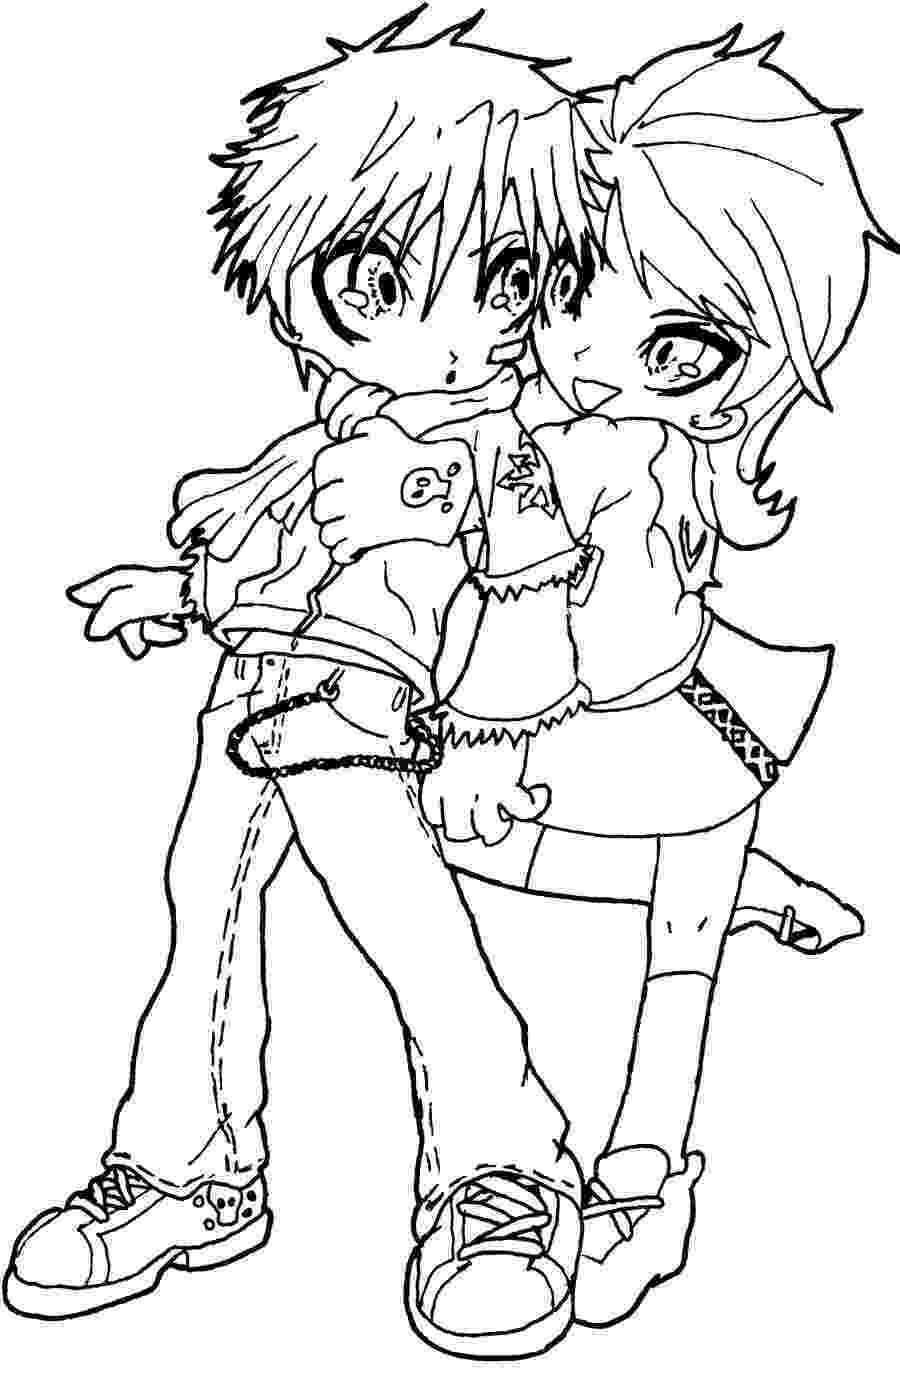 anime couples coloring pages chibi couple lineart version by hamsterbag on deviantart anime coloring couples pages